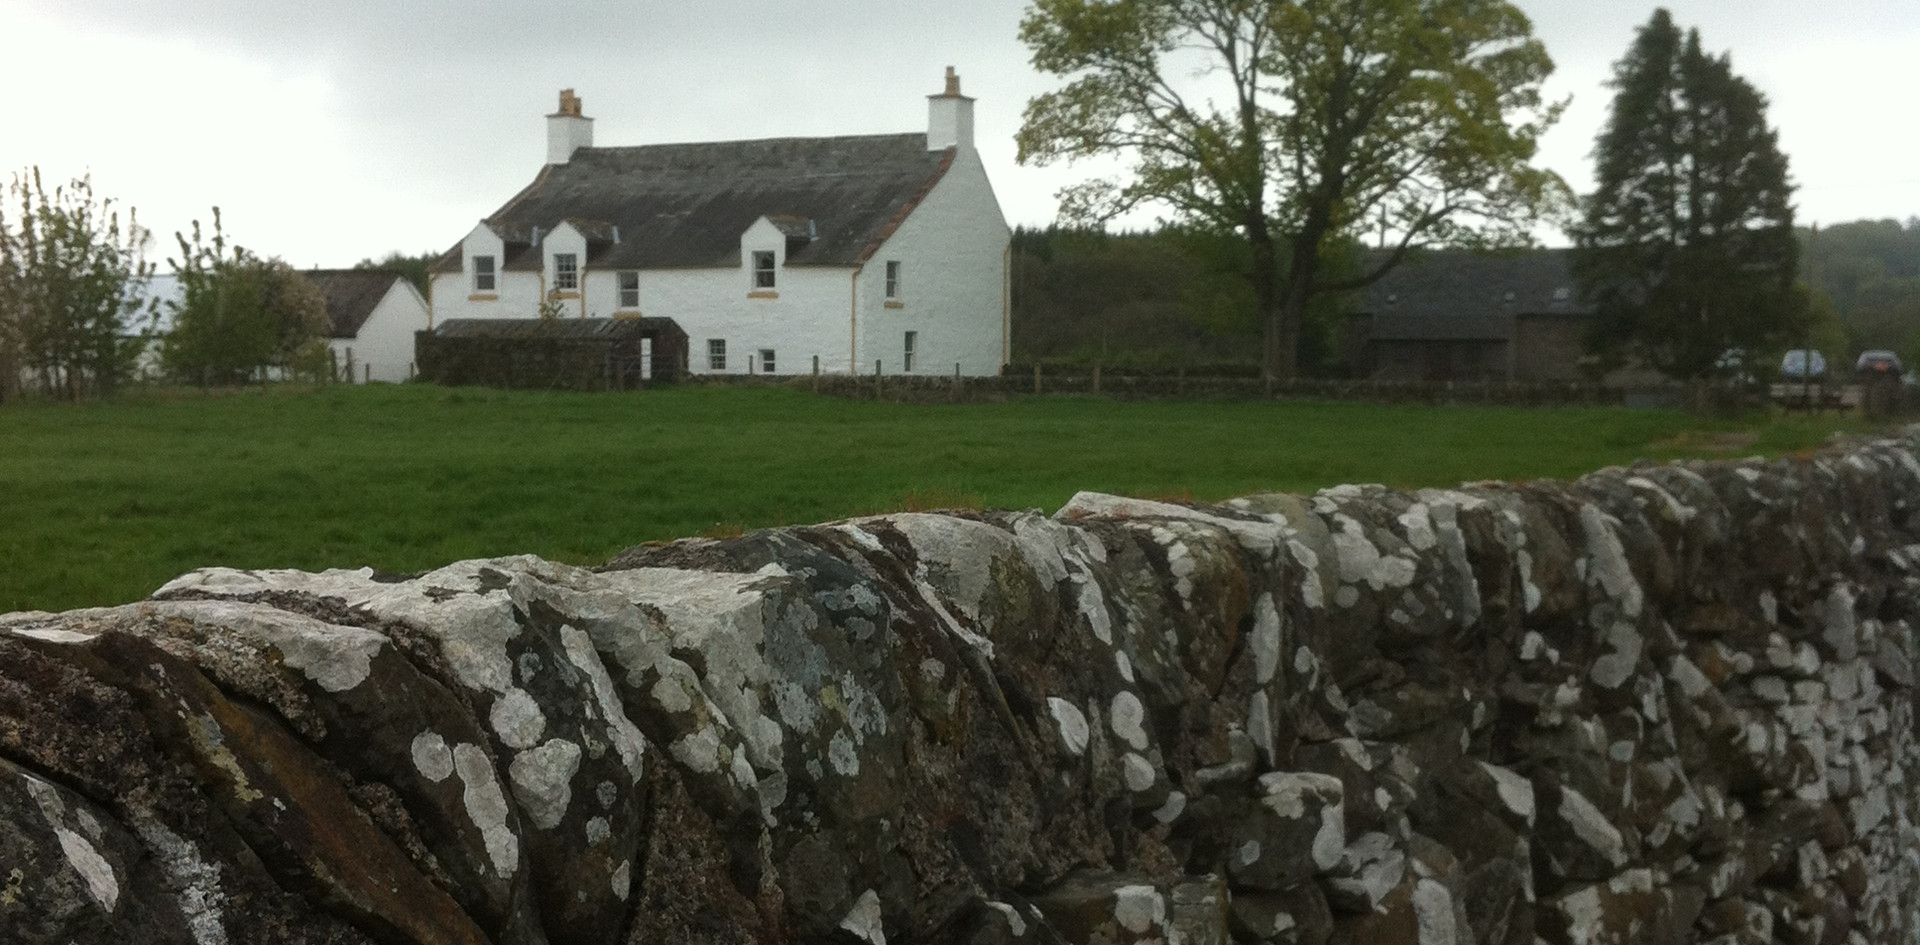 Scottish cottage and stone wall